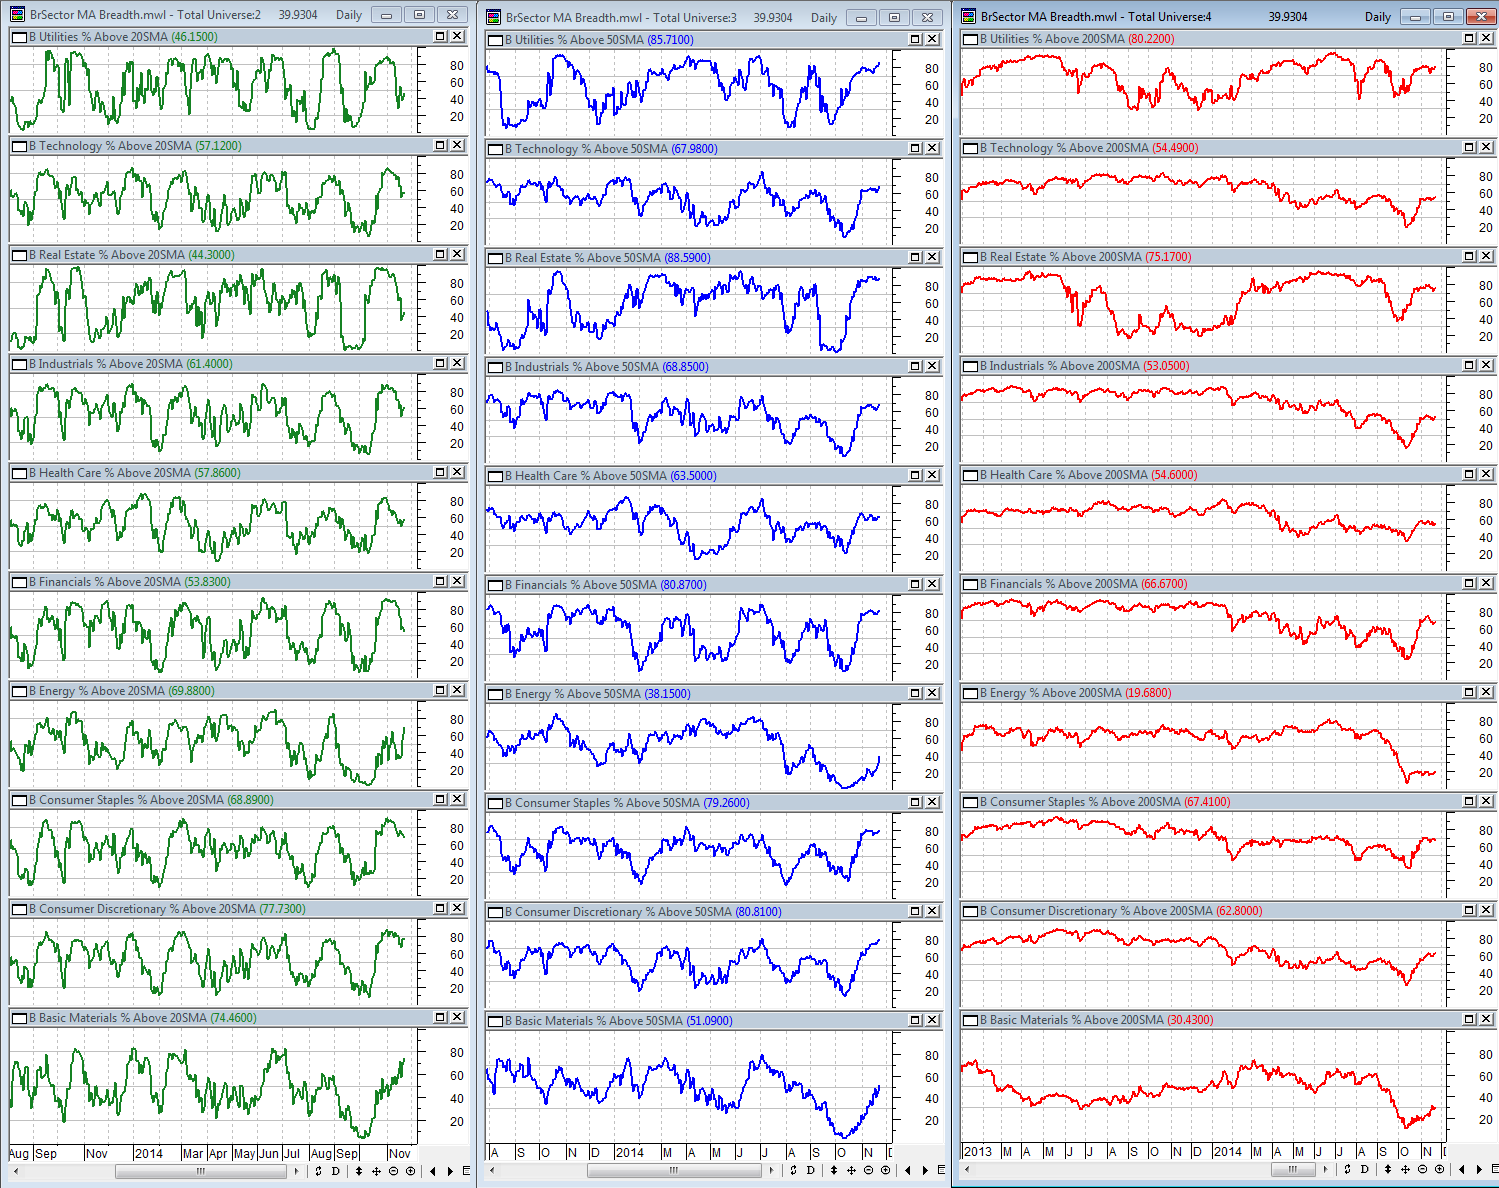 11-21-2014 BSec MA Breadth Dashboard